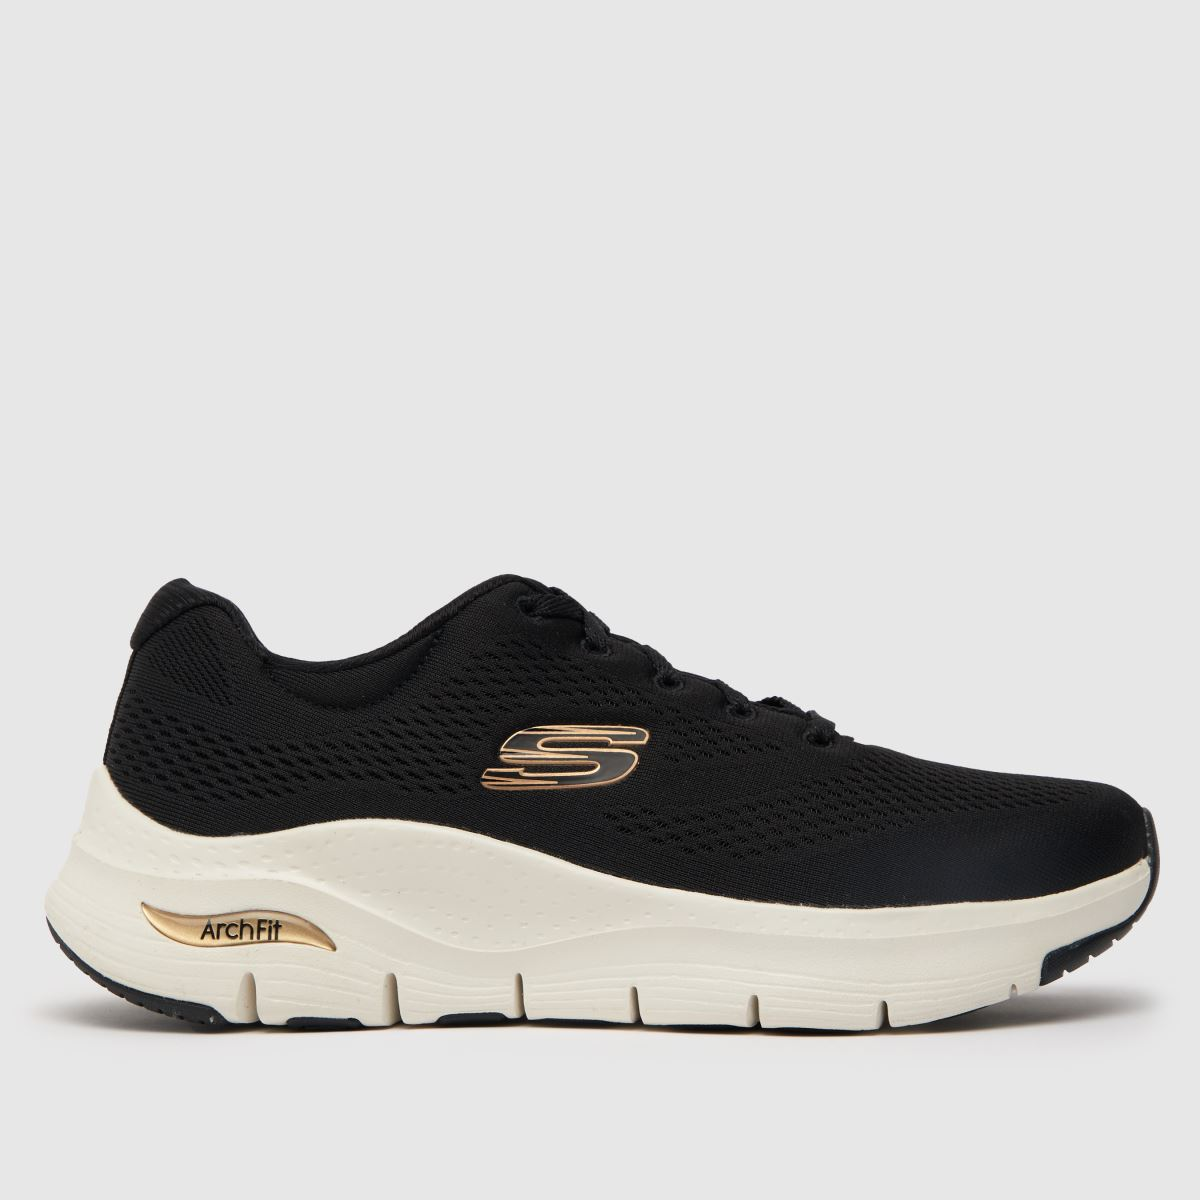 Skechers Black & Gold Flex Appeal 2.0 Opening Night Trainers